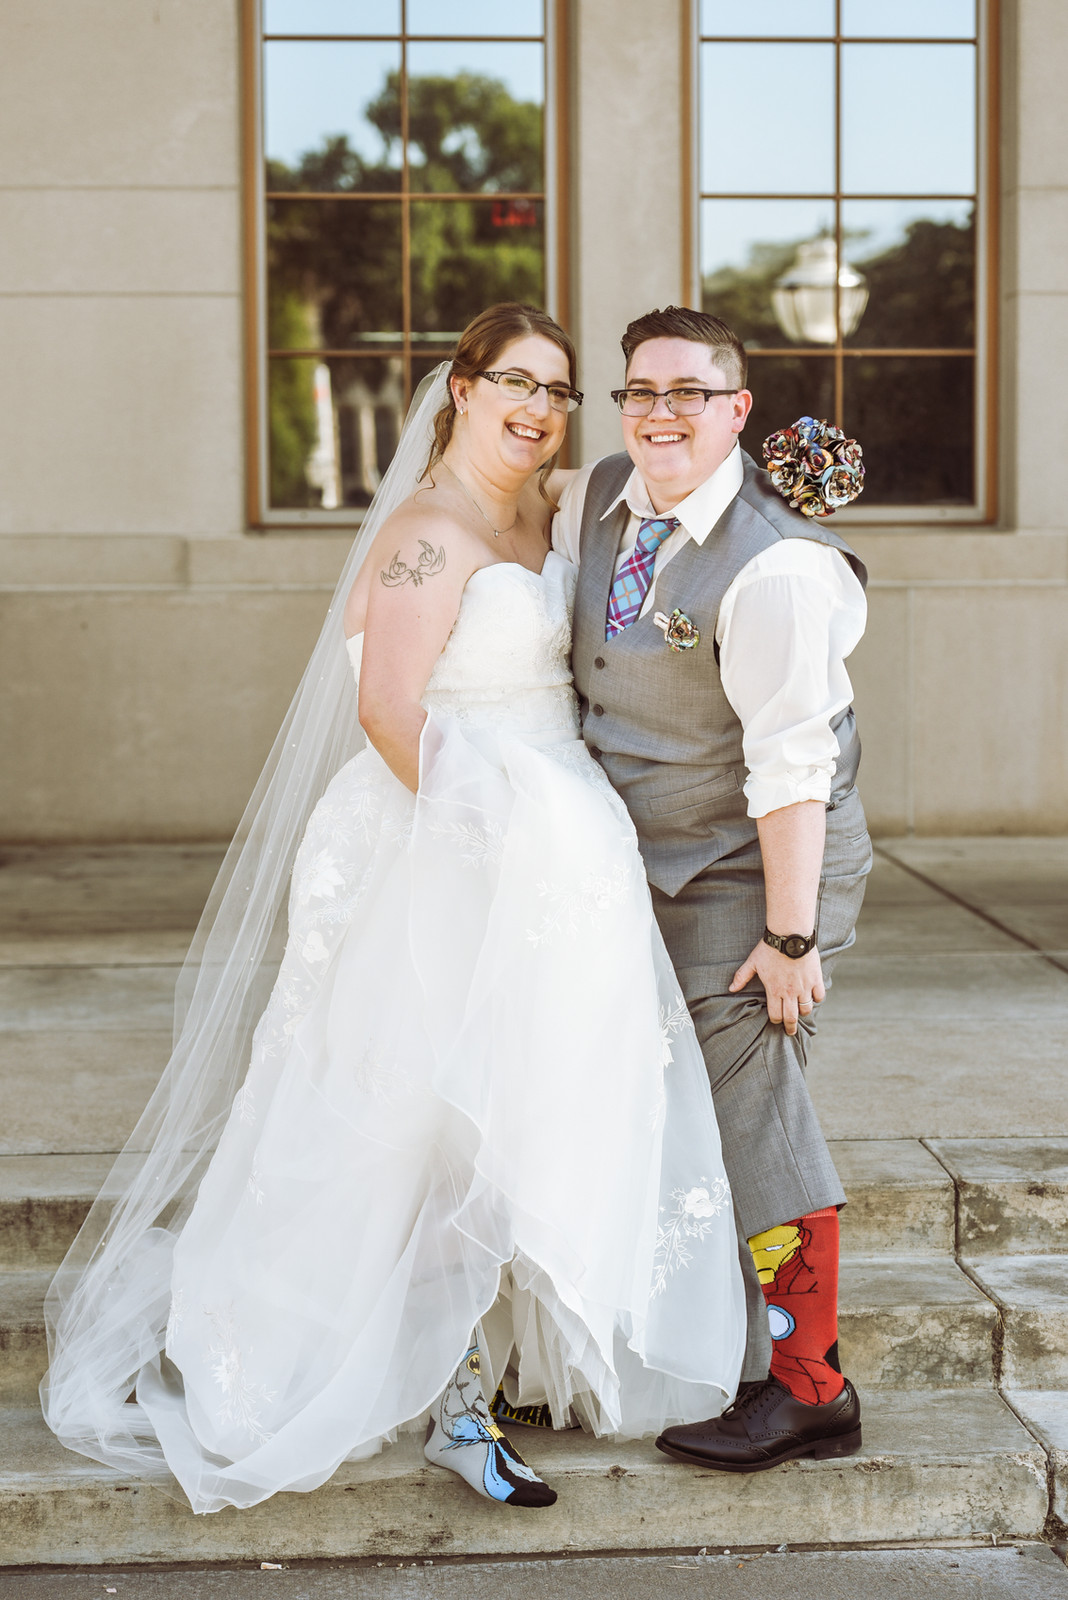 LGBT Wedding Photographer Portfolio | Minneapolis-St. Paul, MN area